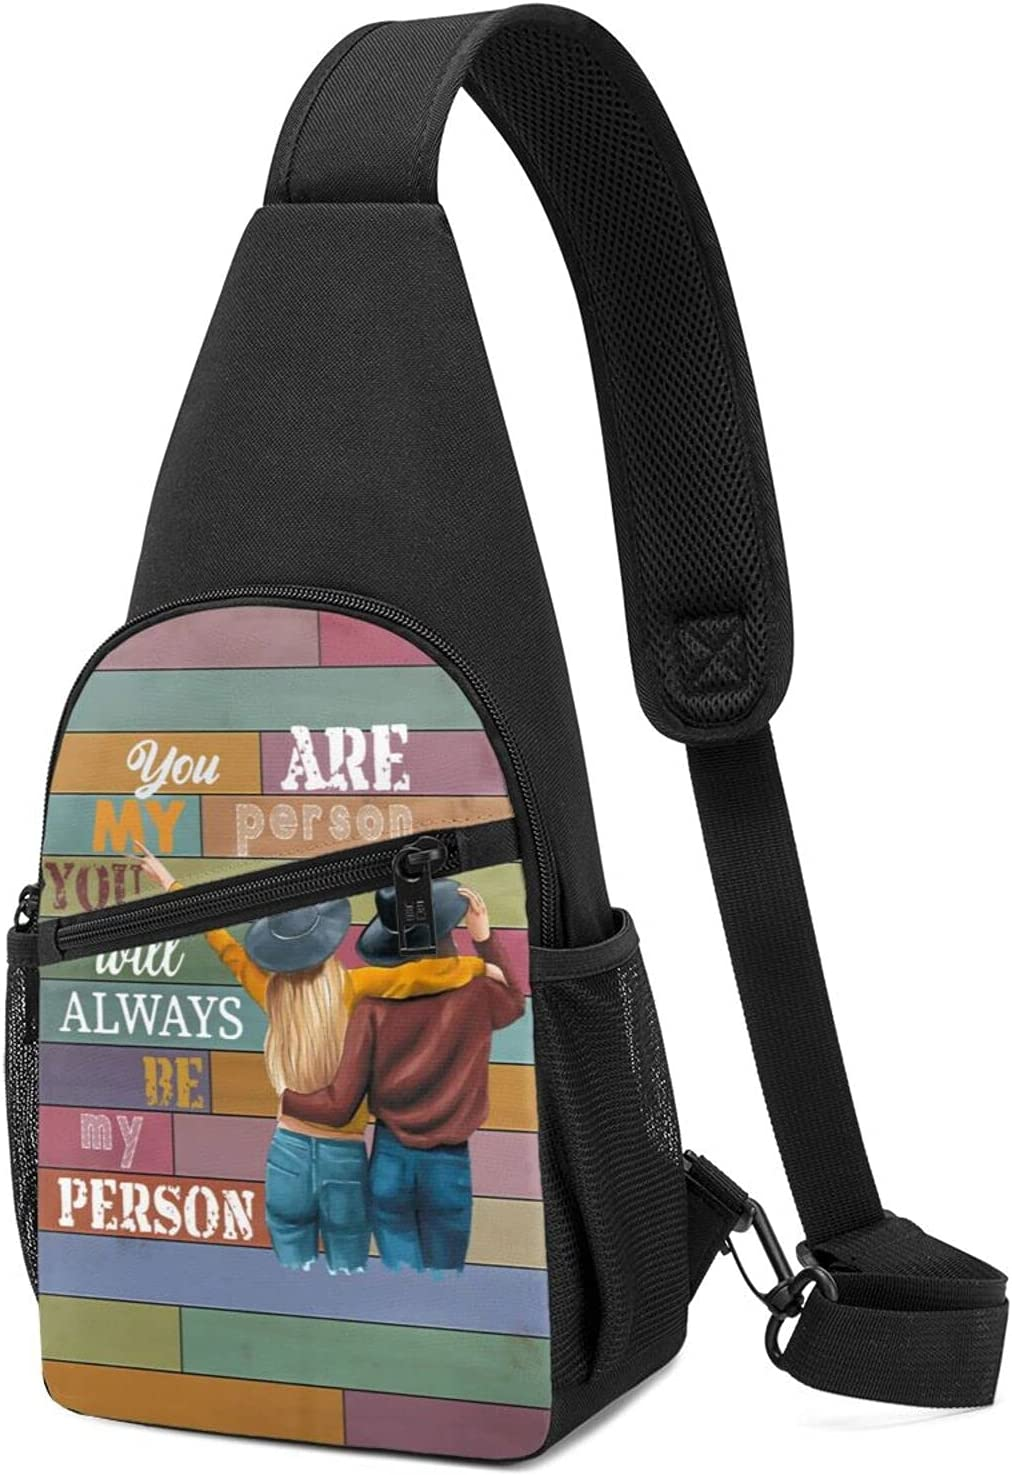 Kimisoy Discount At the price is also underway Sling Bag Bestie Best Friends Resistant Chest Fade Shoul